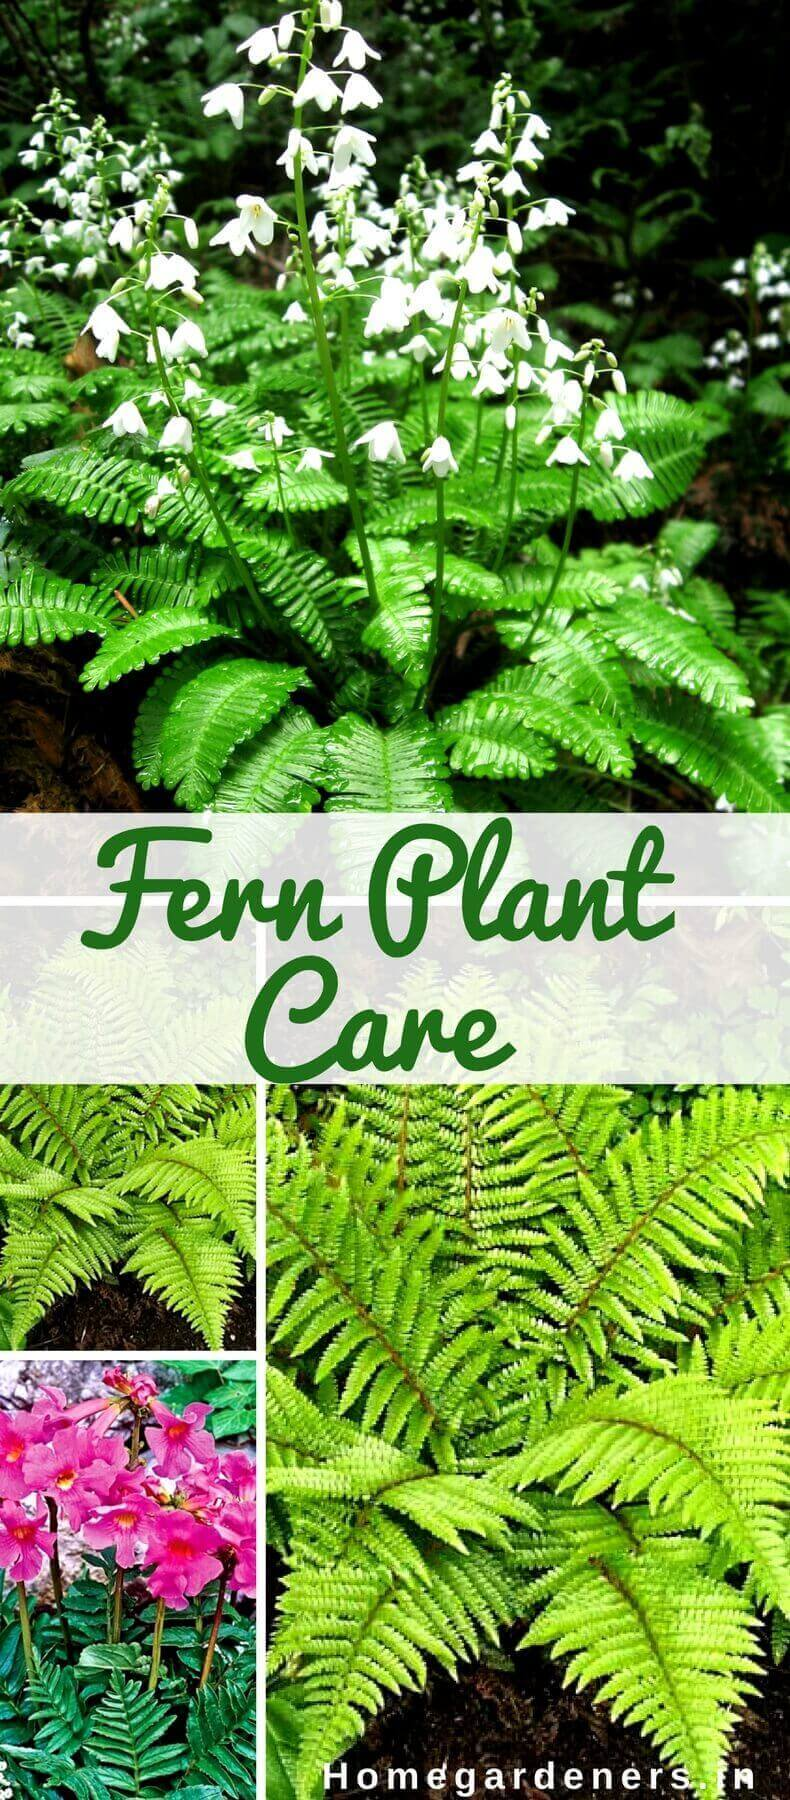 Fern Plant Care- How do you take Care of a Fern at Home and Garden?